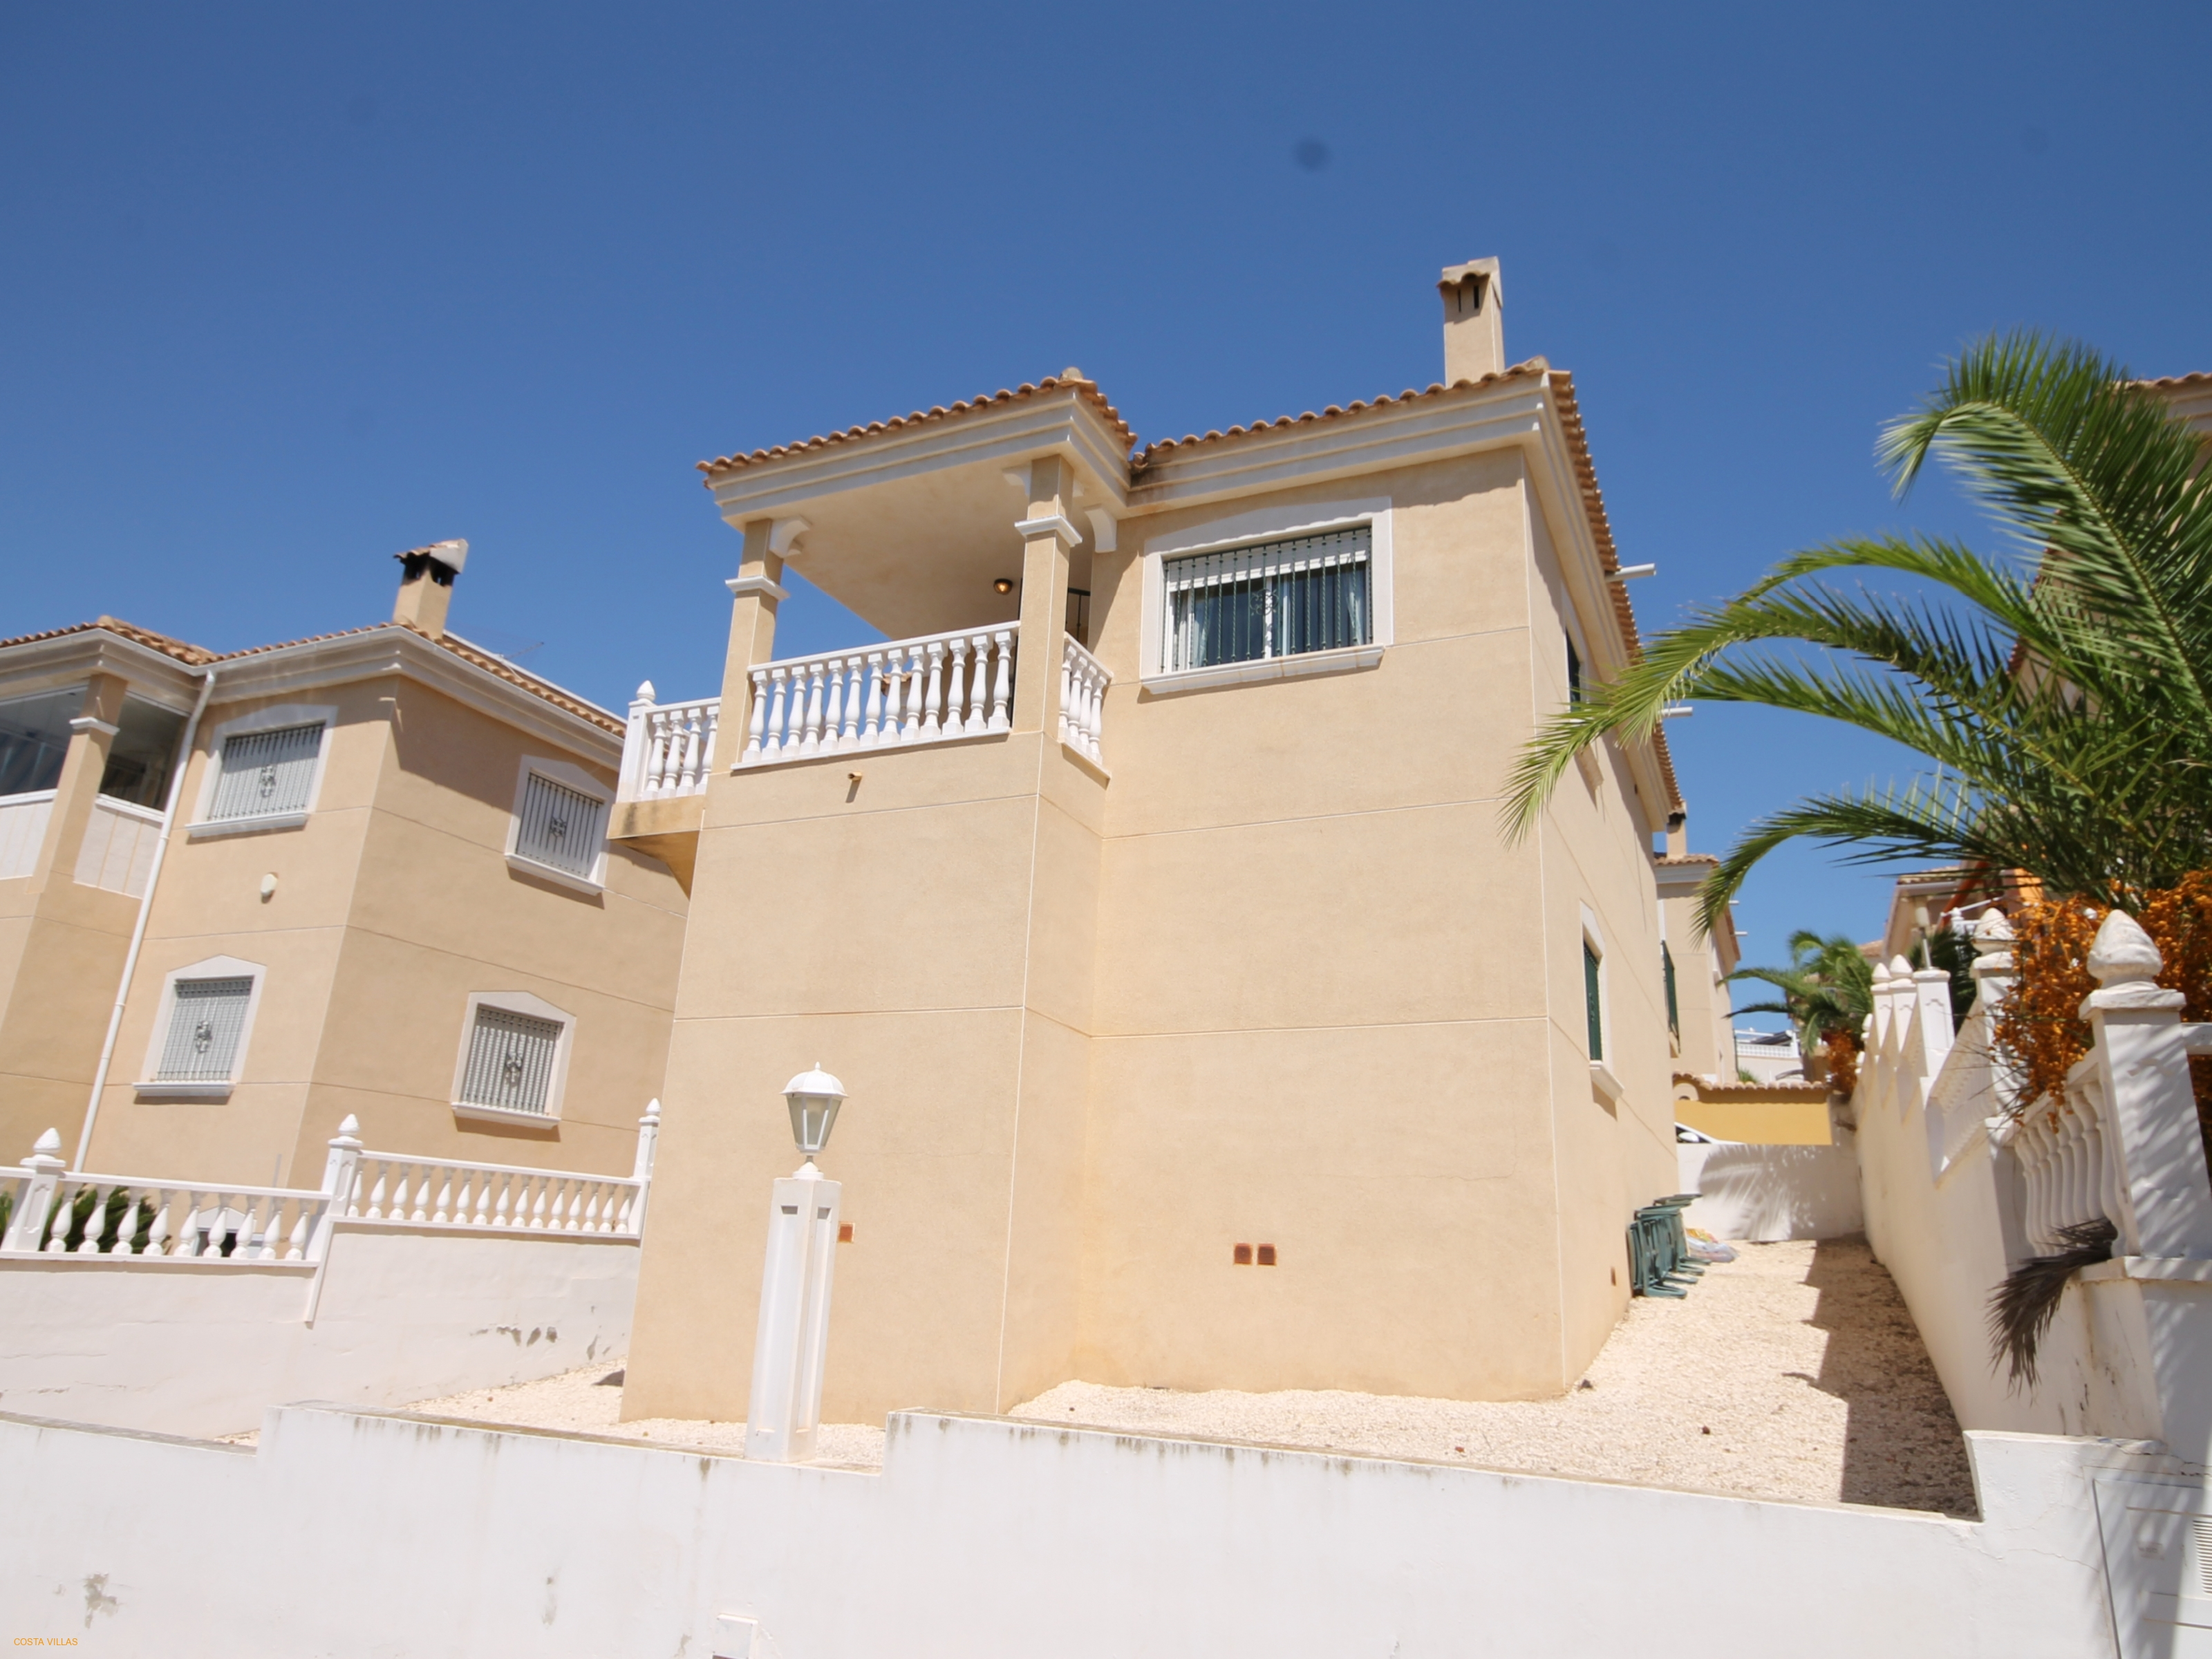 2 bed. 2 bath villa with very large garage